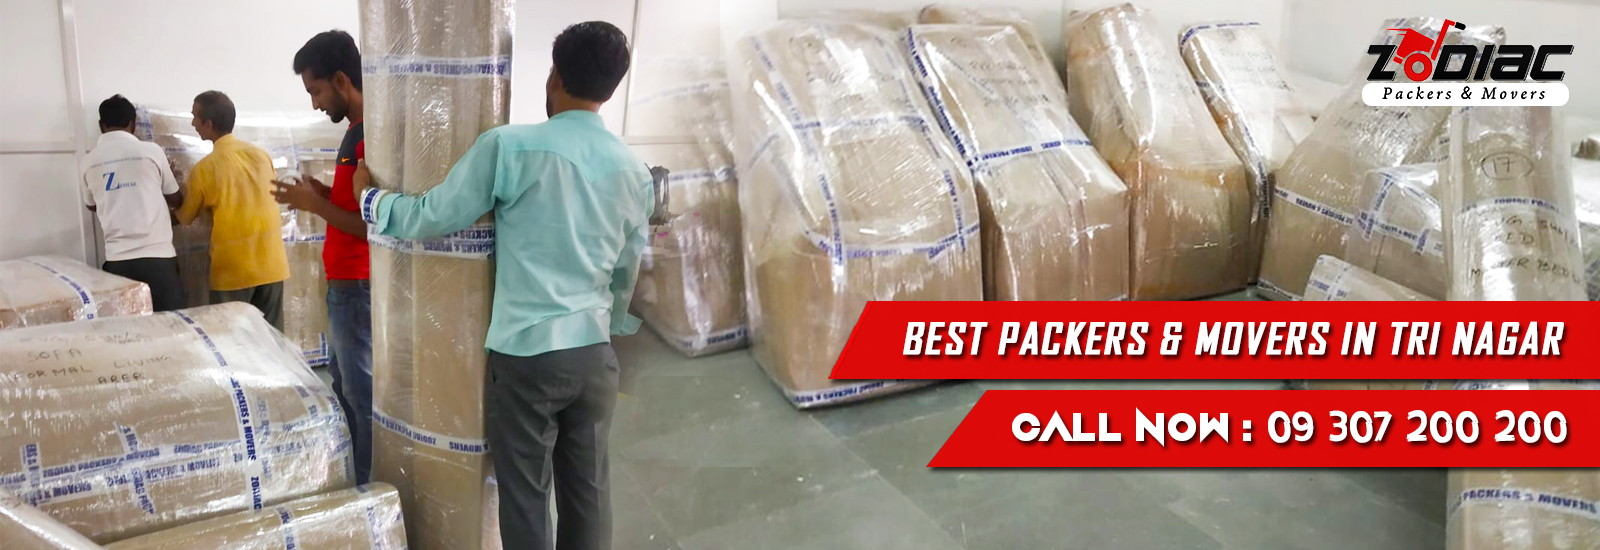 Packers and Movers in Tri Nagar